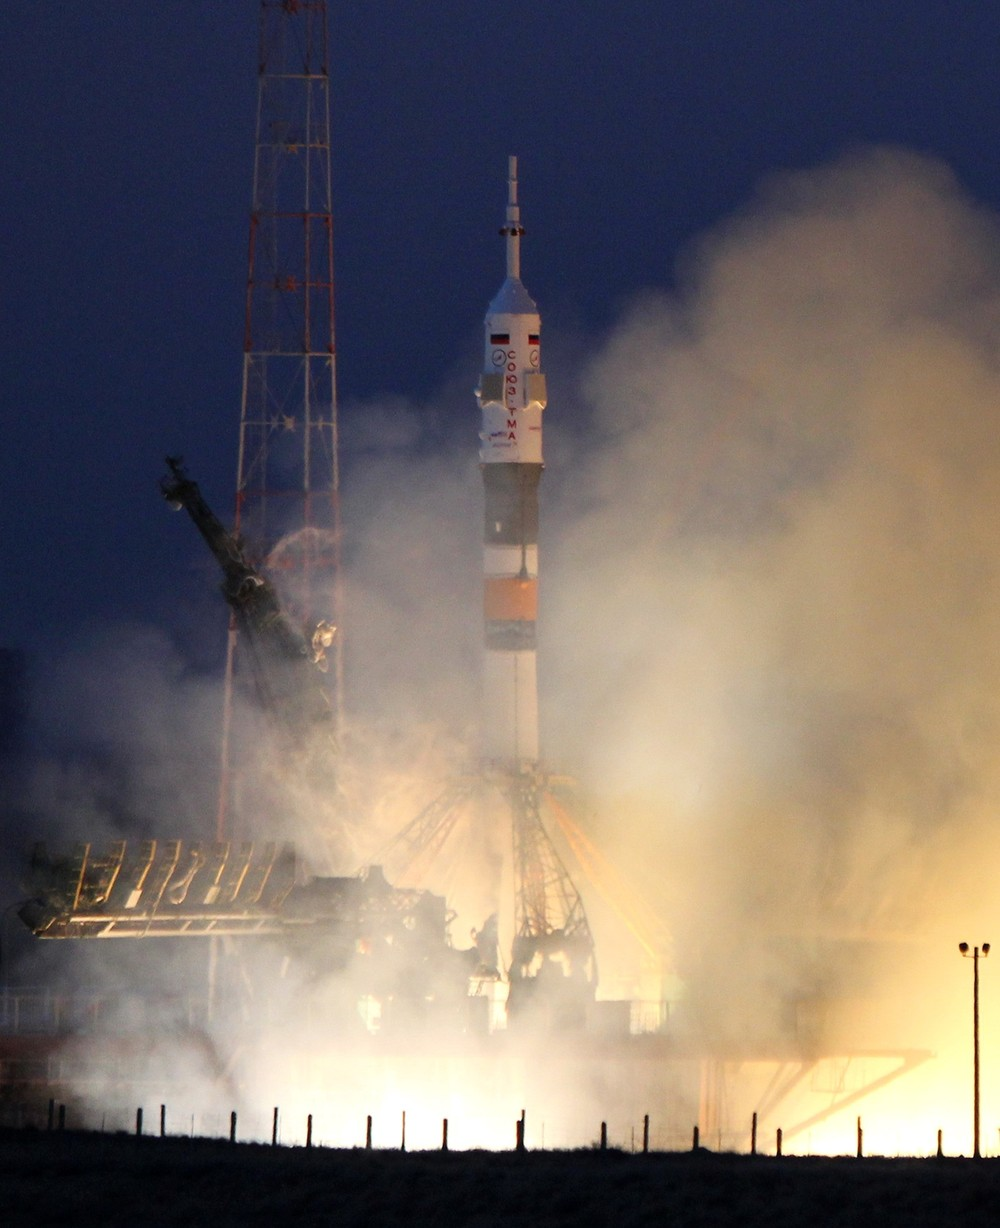 On December 19, 2012, a Soyuz spacecraft carrying Canadian astronaut Chris Hadfield, US astronaut Tom Marshburn and Russian cosmonaut Roman Romanenko blasted off from the Baikonur cosmodrome in Kazakhstan, bound for the International Space Station.